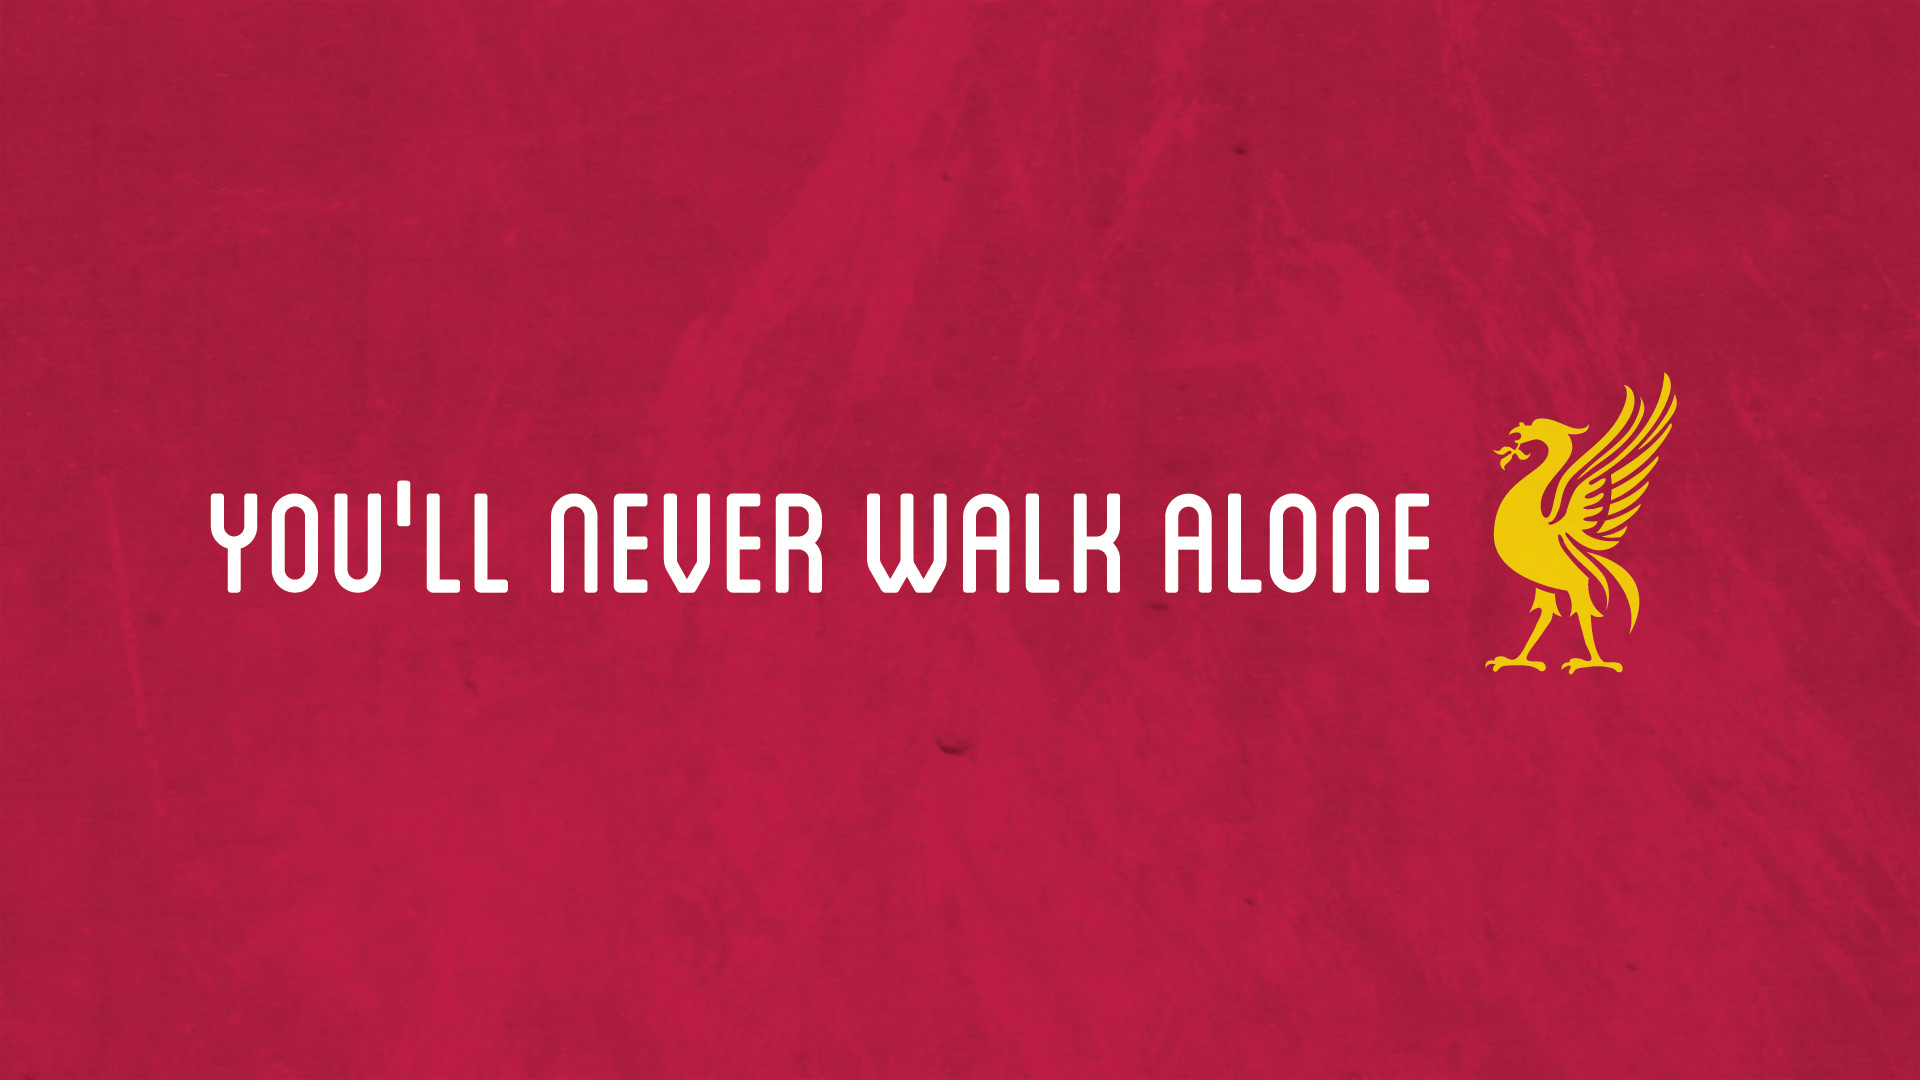 Ynwa Wallpapers 72 images 1920x1080